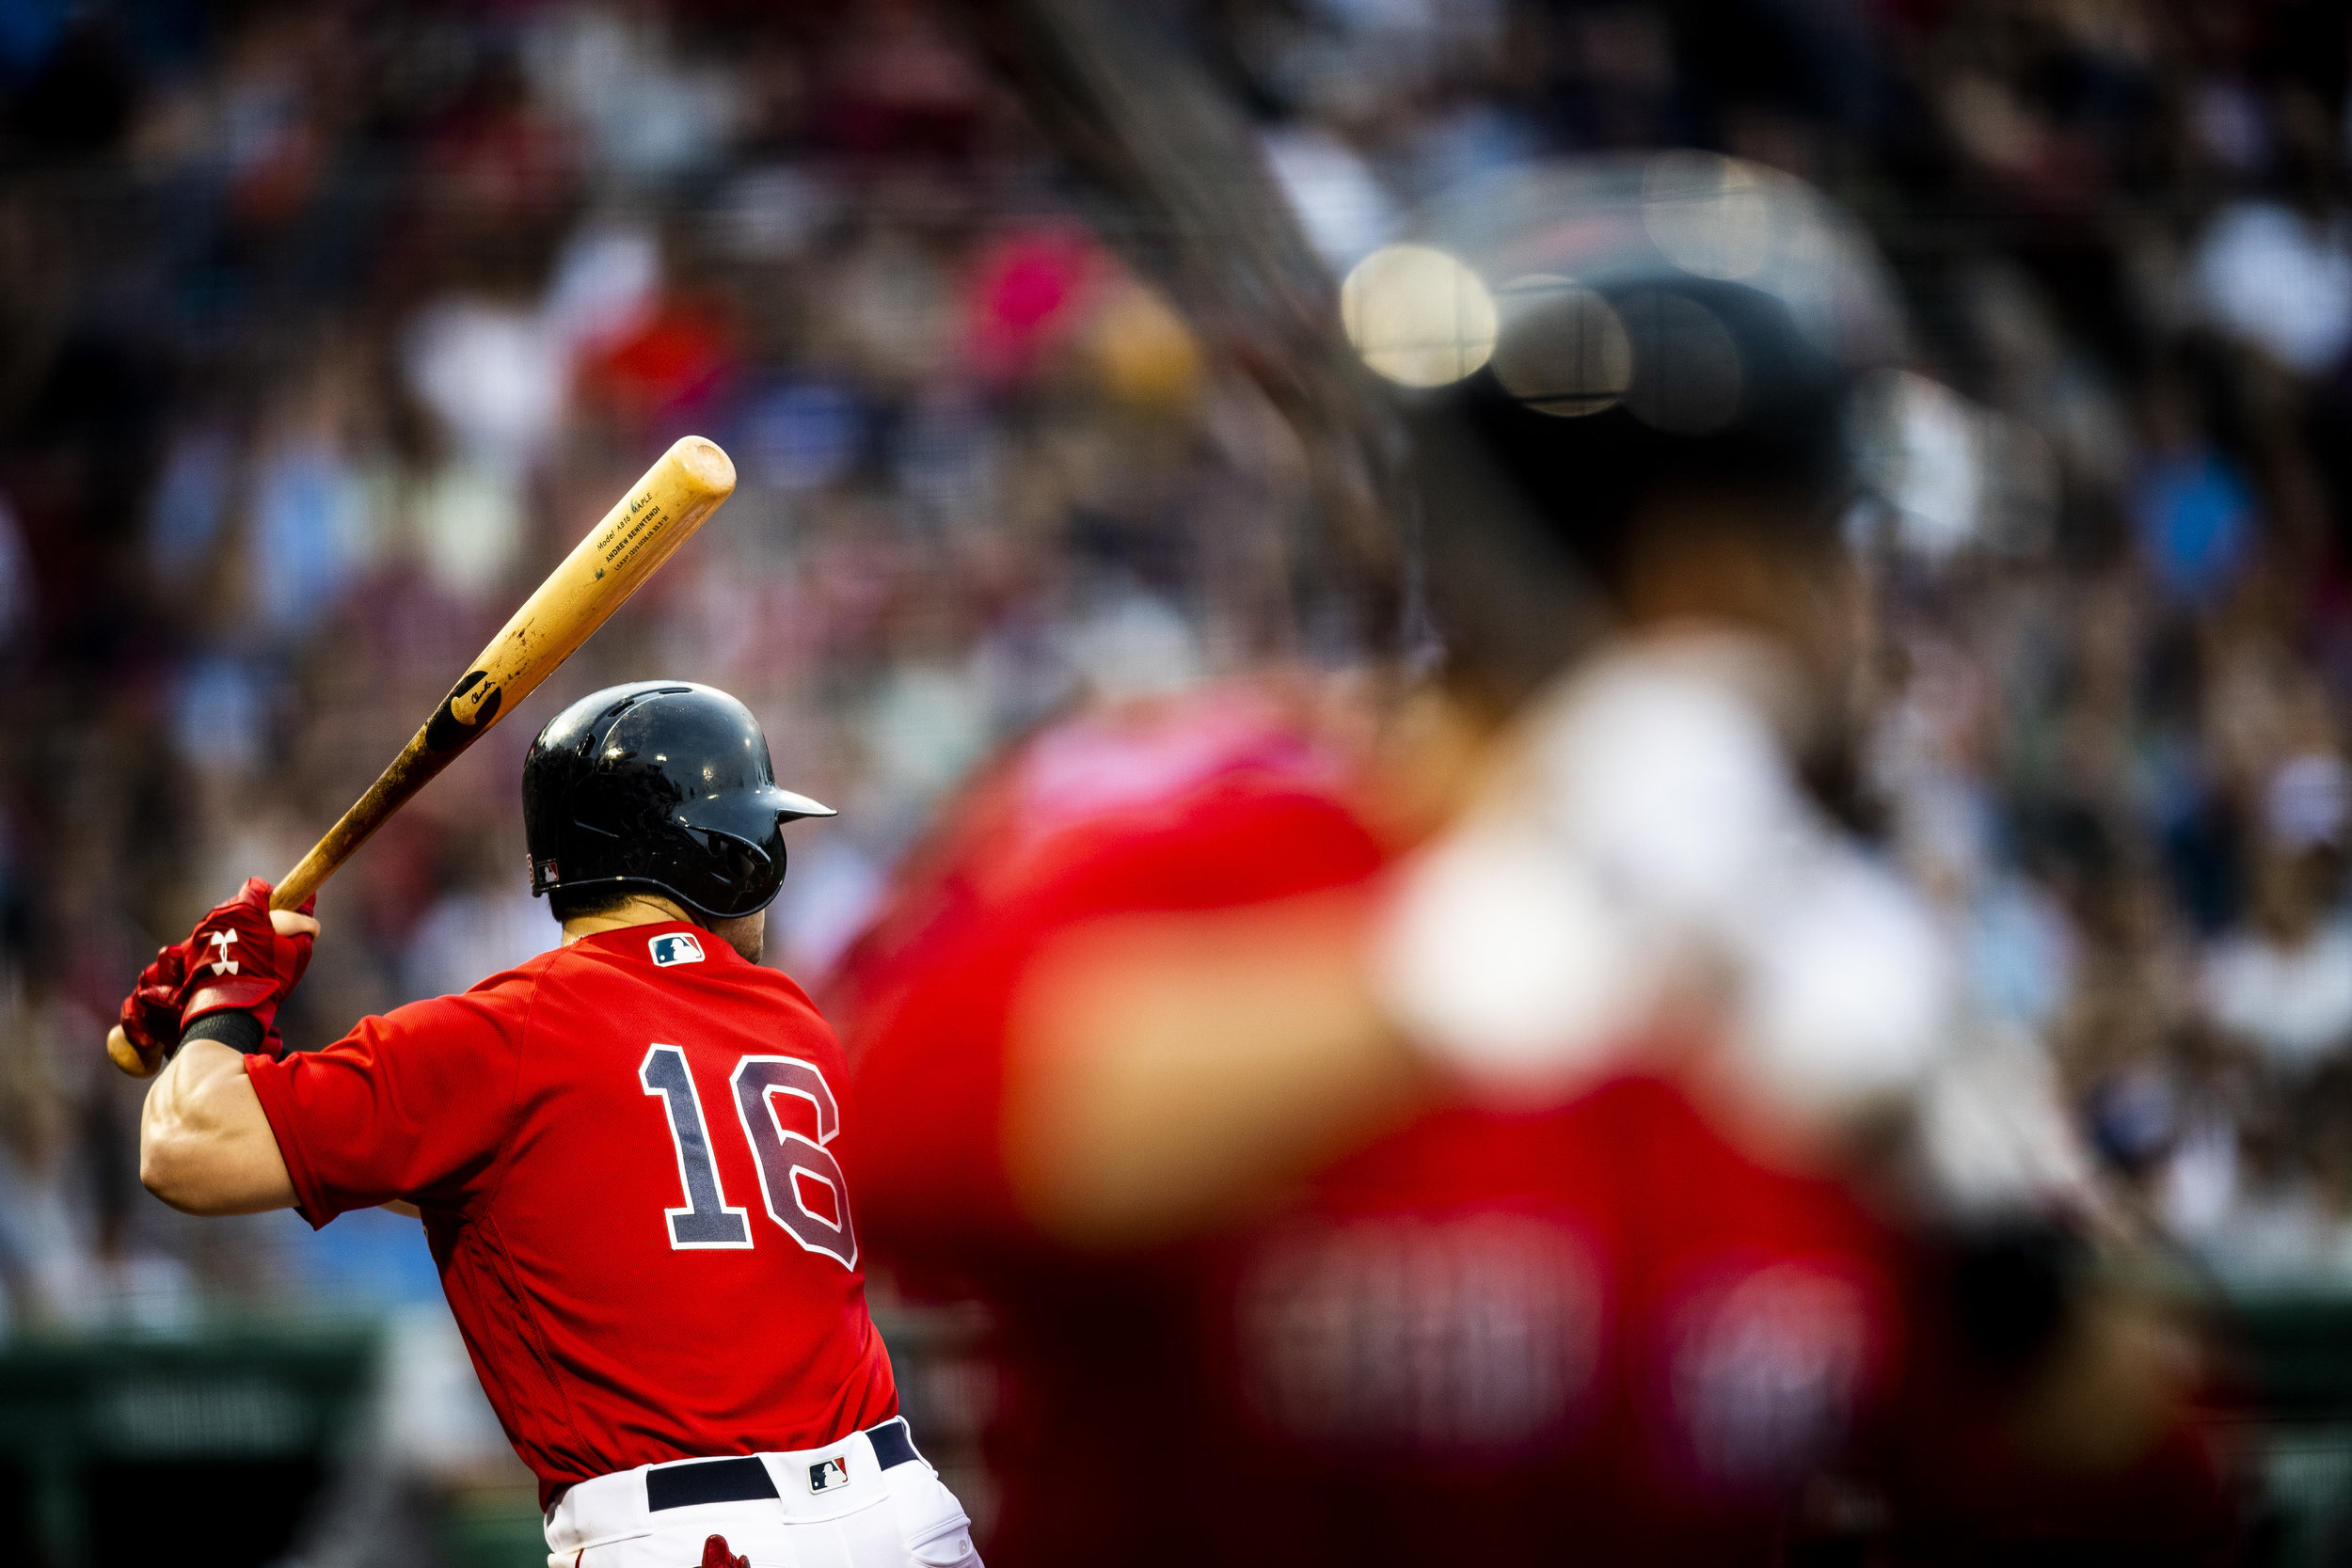 July 26, 2018, Boston, MA: Boston Red Sox outfielder Andrew Benintendi takes an at bat as the Boston Red Sox face the Minnesota Twins at Fenway Park in Boston, Massachusetts on Friday, July 27, 2018. (Photo by Matthew Thomas/Boston Red Sox)